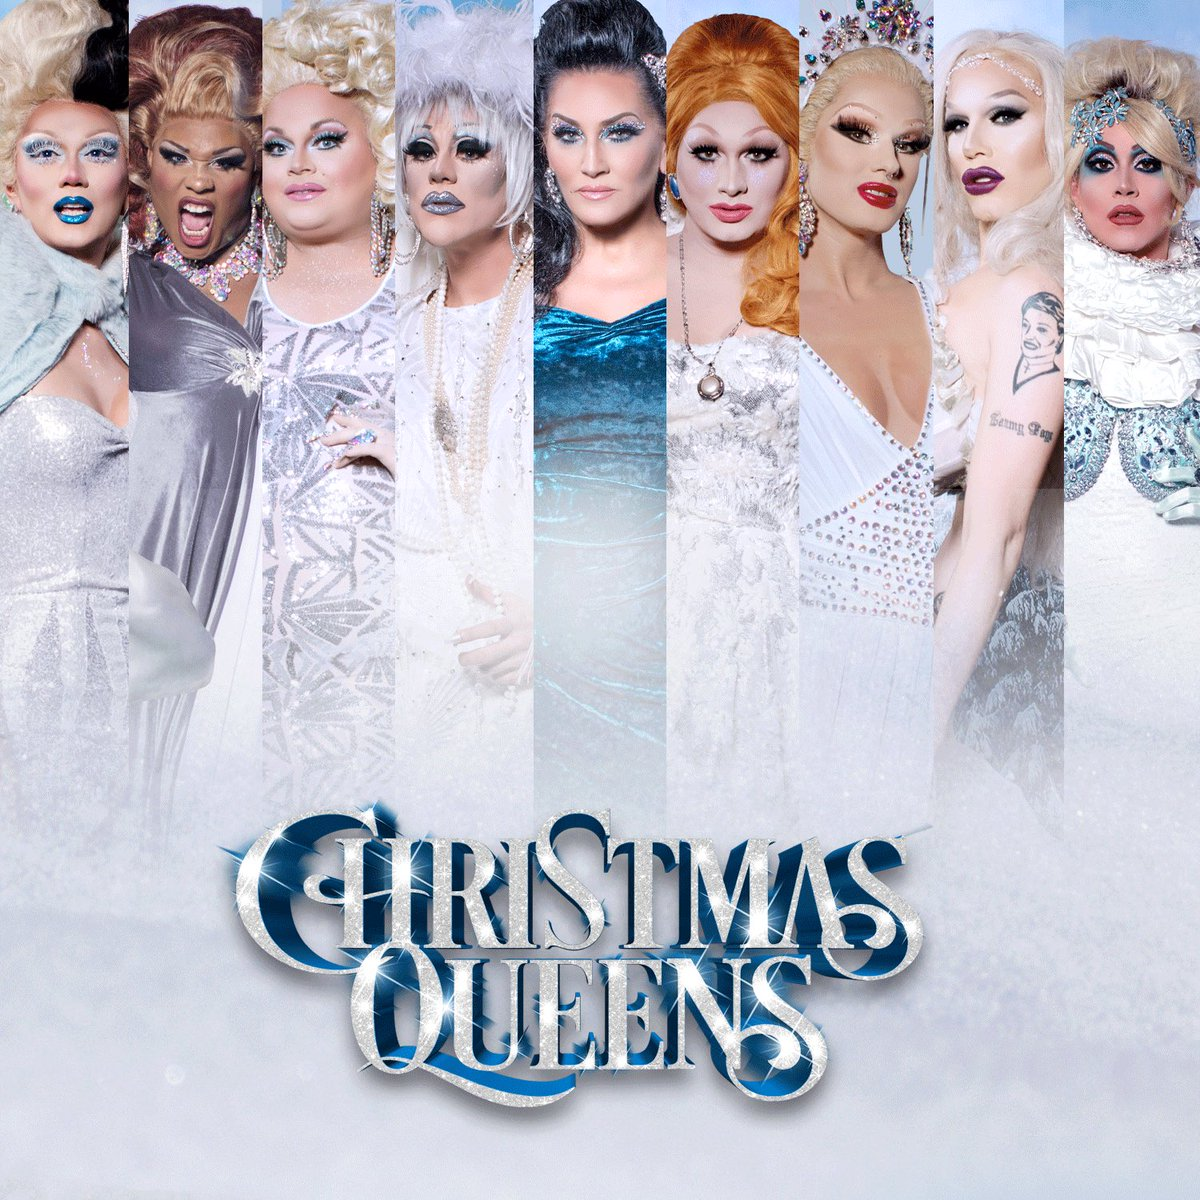 Christmas Queens.Manila Luzon On Twitter Christmas Queens Nyc 12 17 Boston